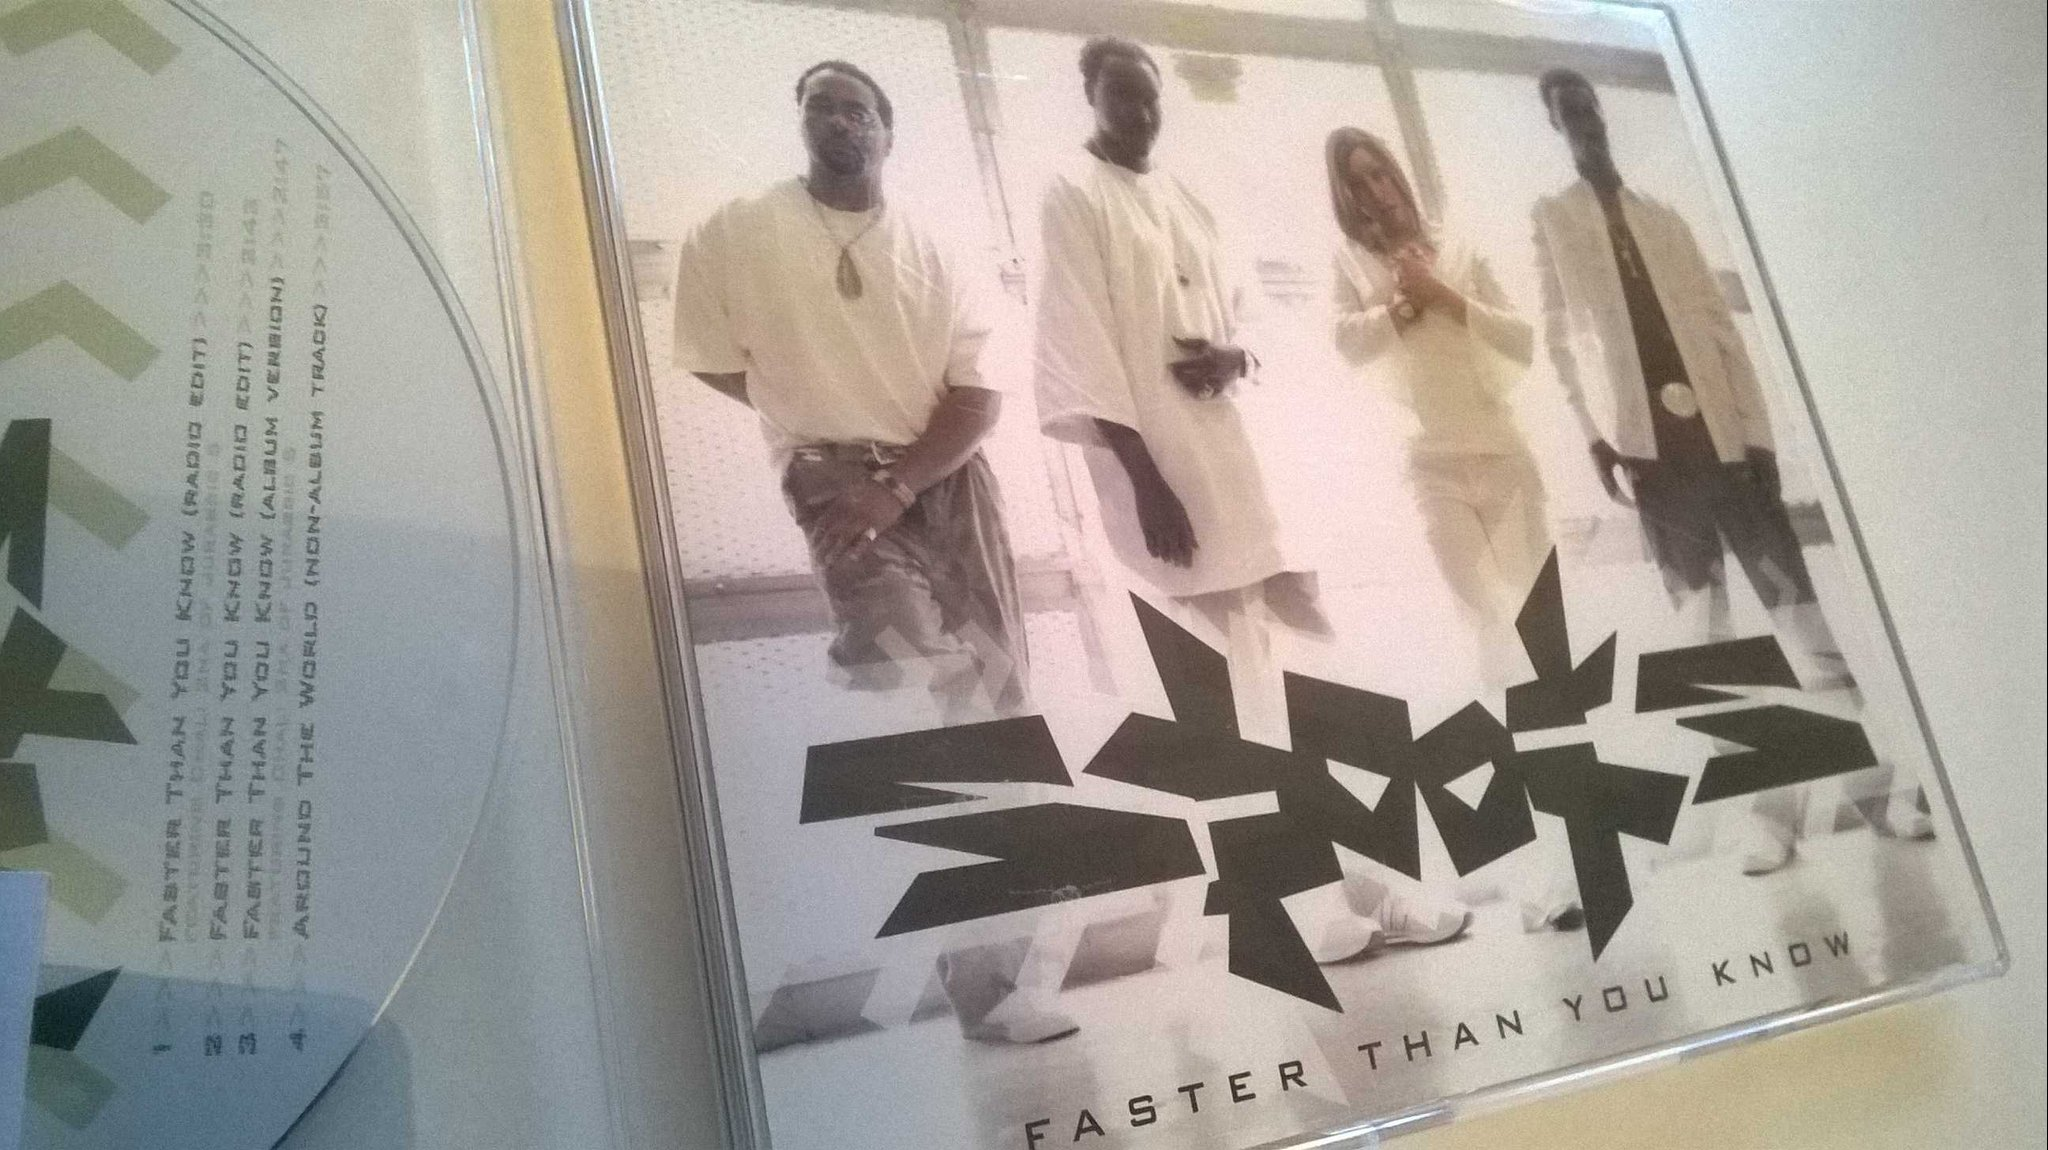 Spooks ?- Faster Than You Know, CD, Single